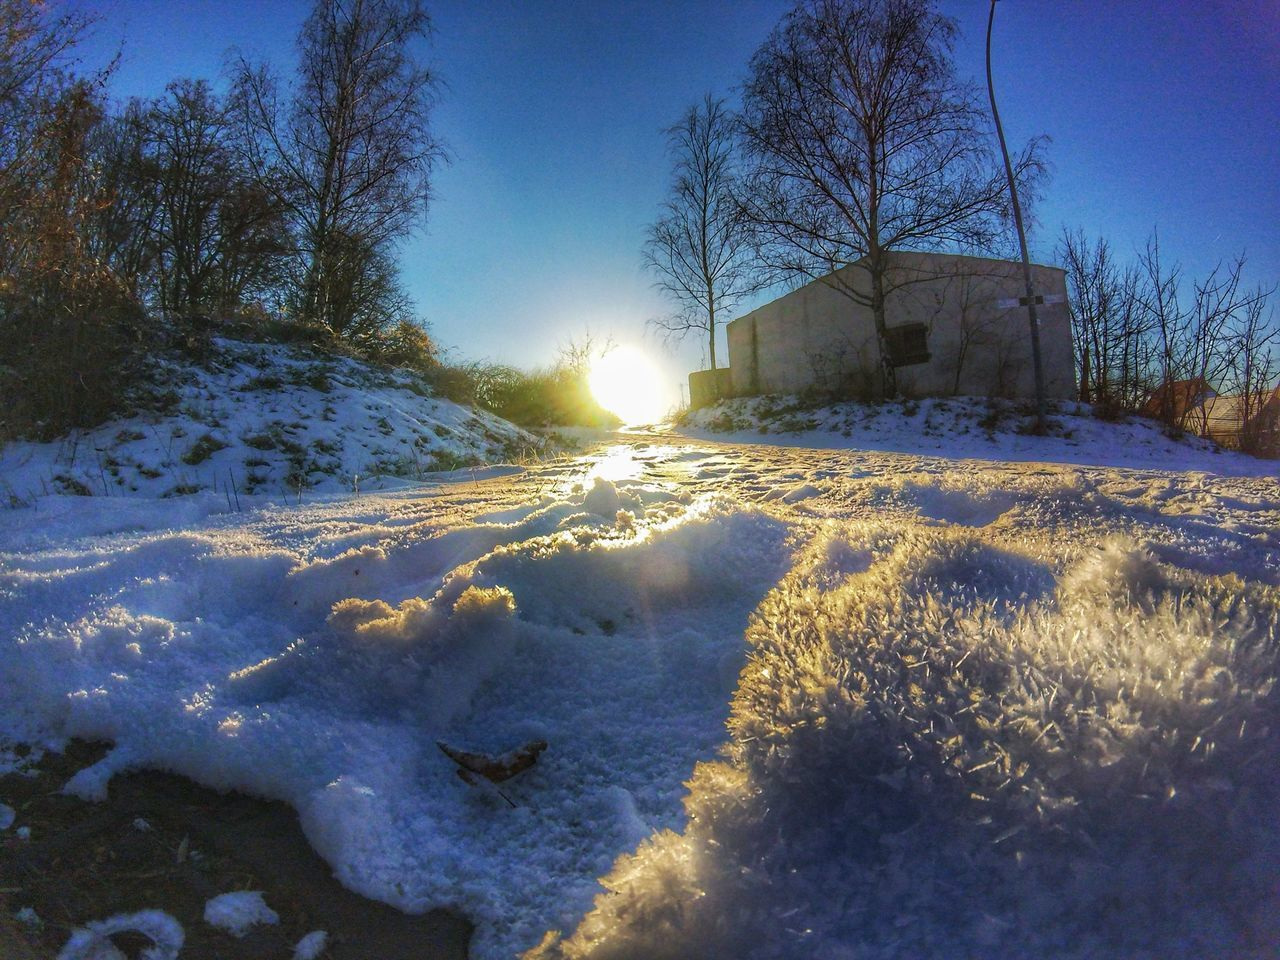 Shadows & Lights Sun Sunshine Snow Goprohero4 Goprooftheday Goprophotography Snapseed Gopro Gopro Session Winter Winter Wonderland Cold Sunset EyEmNewHere